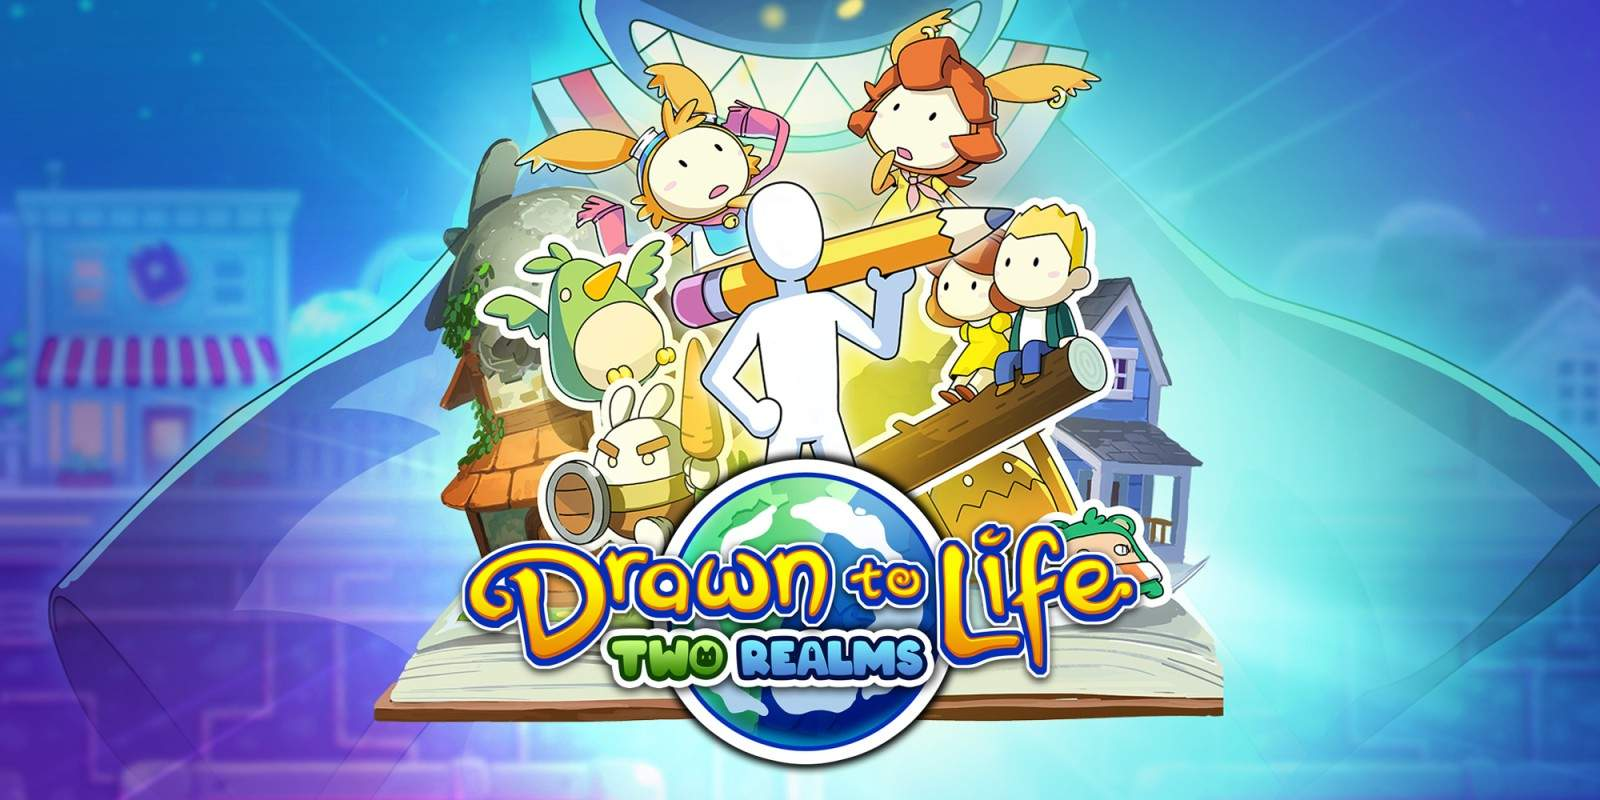 Drawn To Life: Two Realms - DLC gratuito per Nintendo Switch